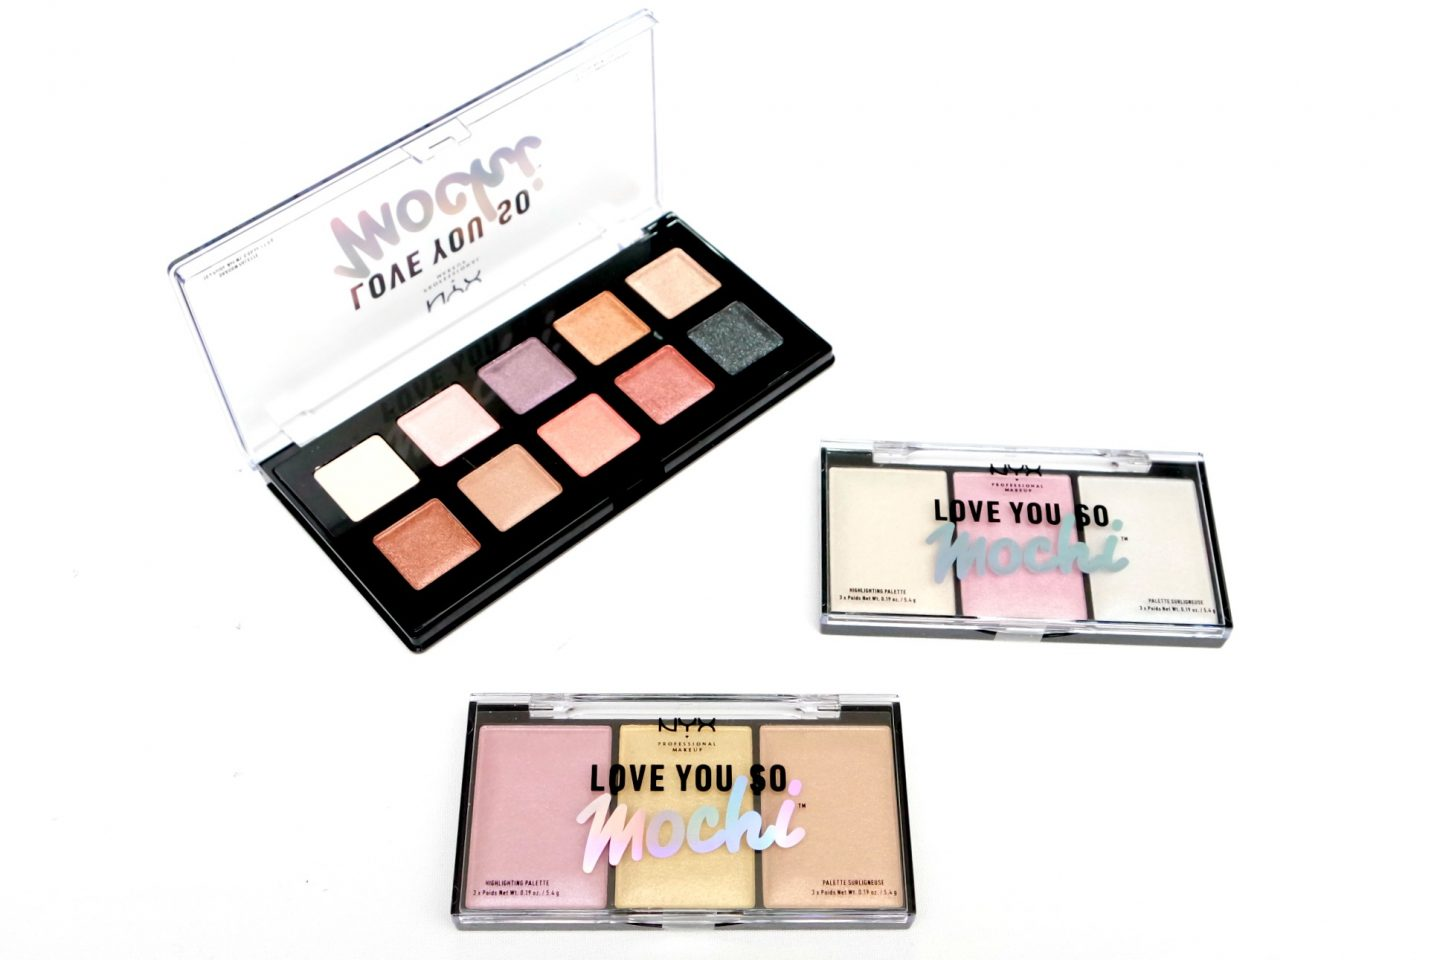 NYX Professional Makeup Love You So Mochi Collection Review